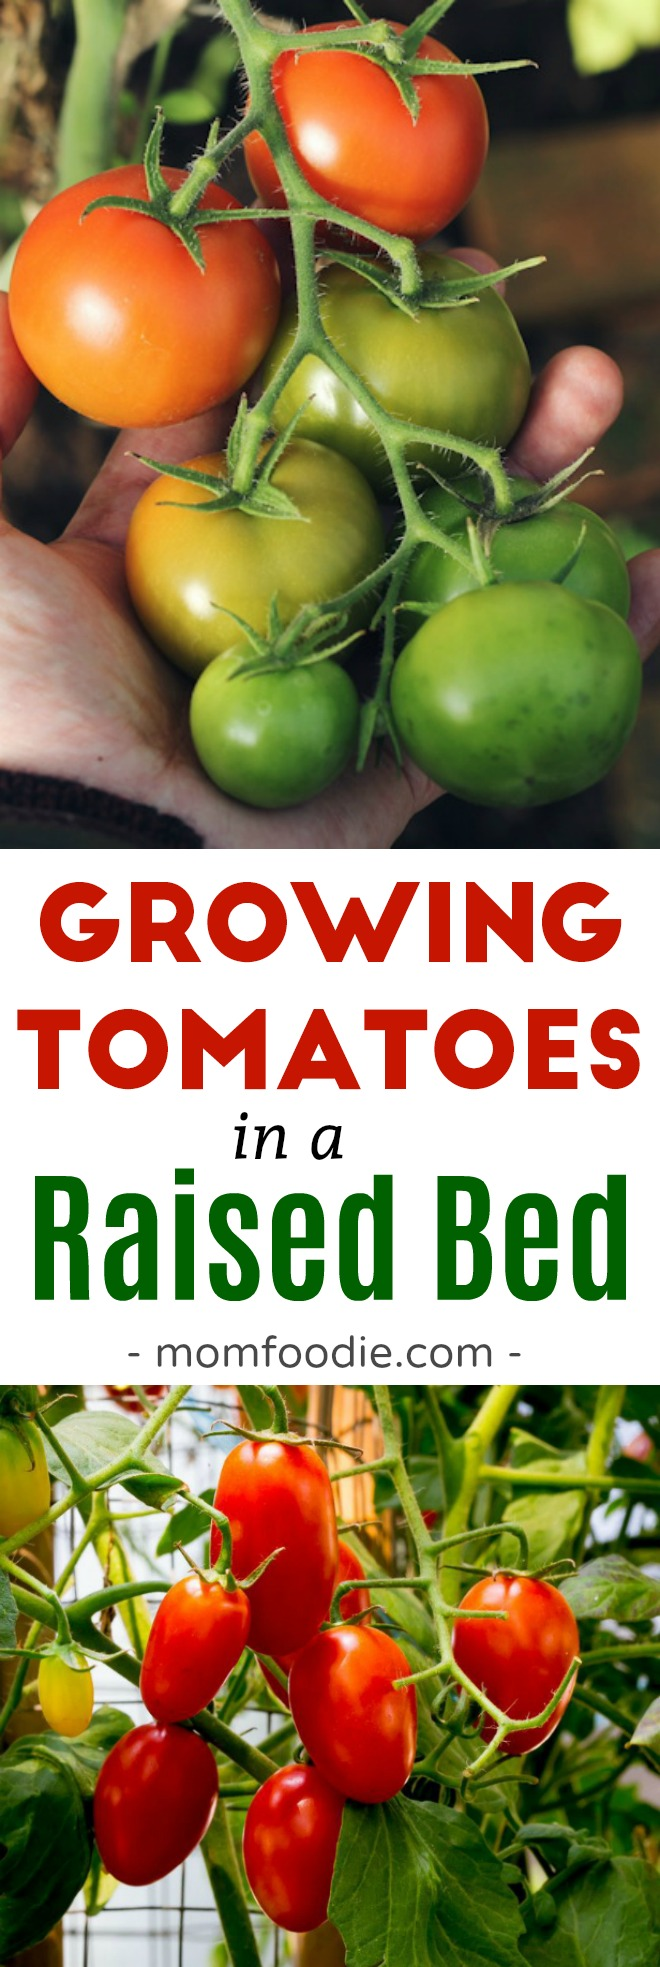 How to Grow Tomatoes in a Raised Bed Garden #garden #gardening #tomatoes #gardeningtips  #vegetablegarden #vegetables